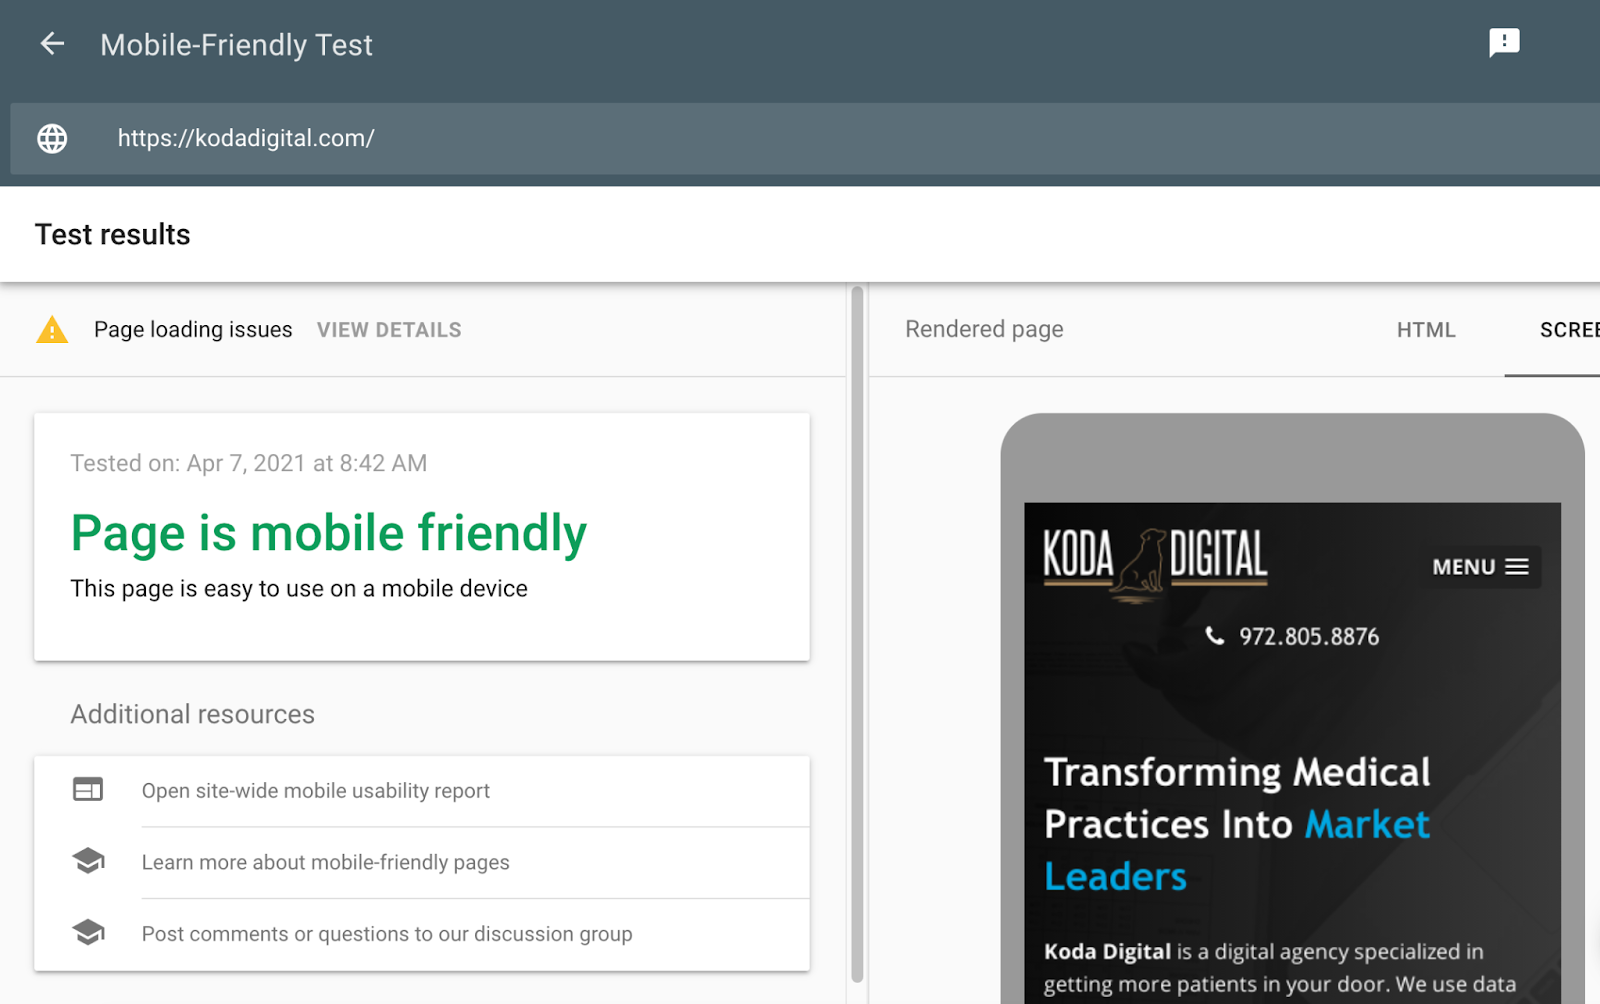 Screenshot image of the Google website mobile-friendly testing tool that shows that the Koda Digital website is mobile-friendly and optimized for mobile users